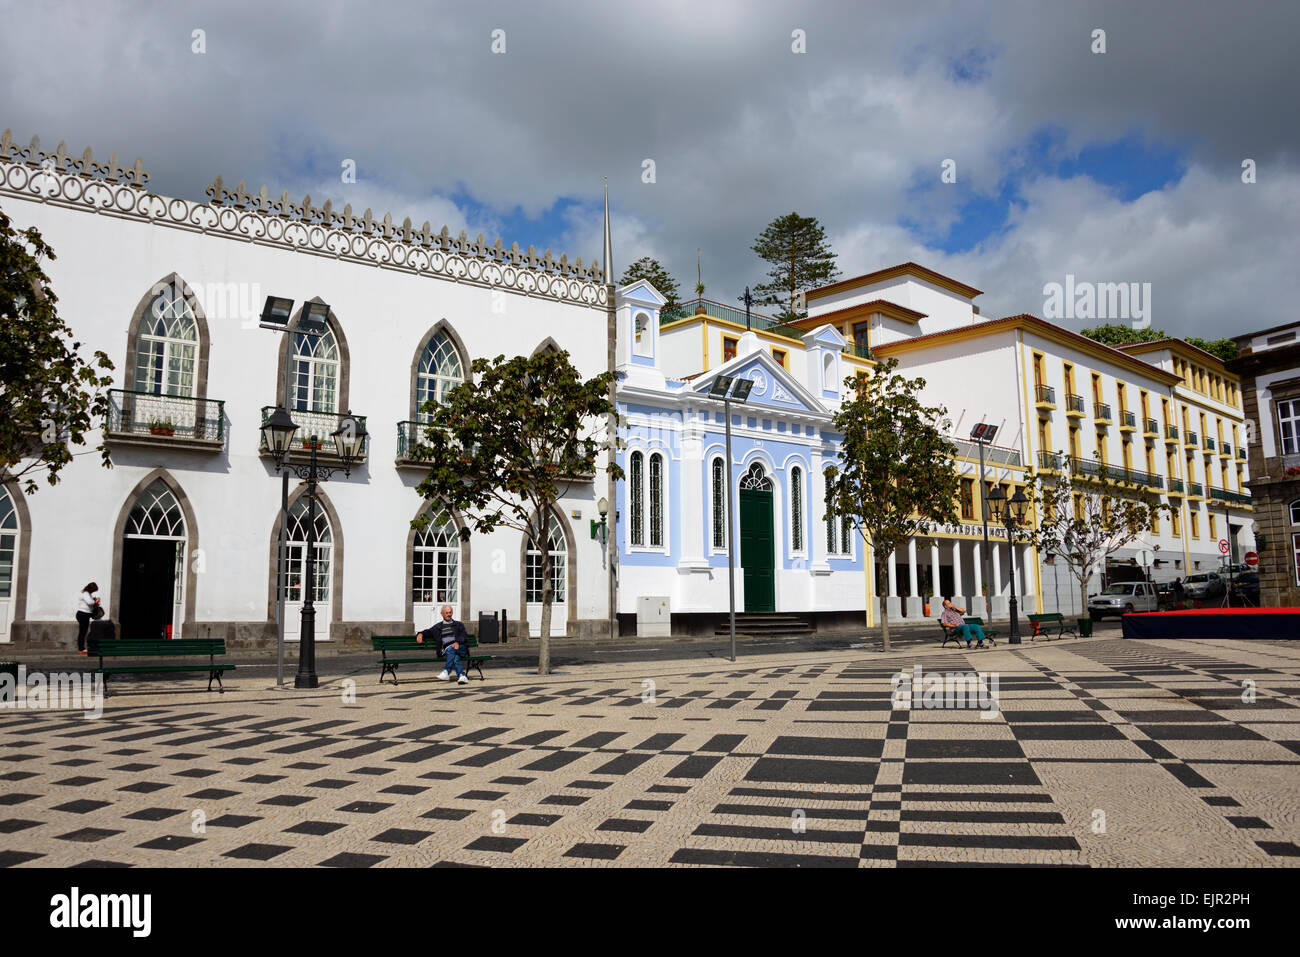 Houses On The Praca Velha Angra Do Heroismo Terceira Azores Stock Photo Royalty Free Image